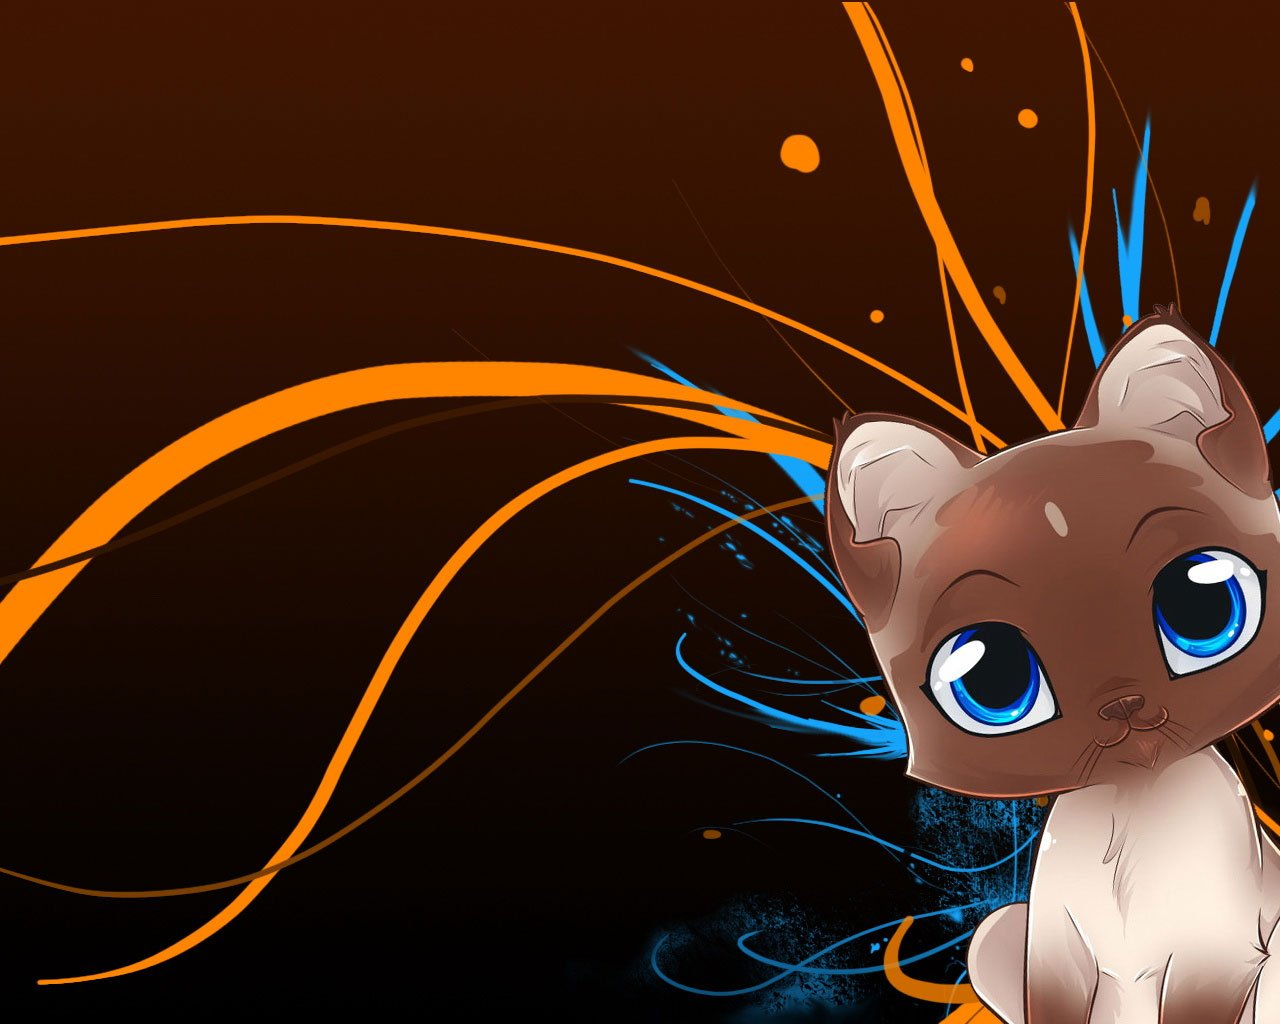 40 Cute Anime Cat Wallpaper On Wallpapersafari